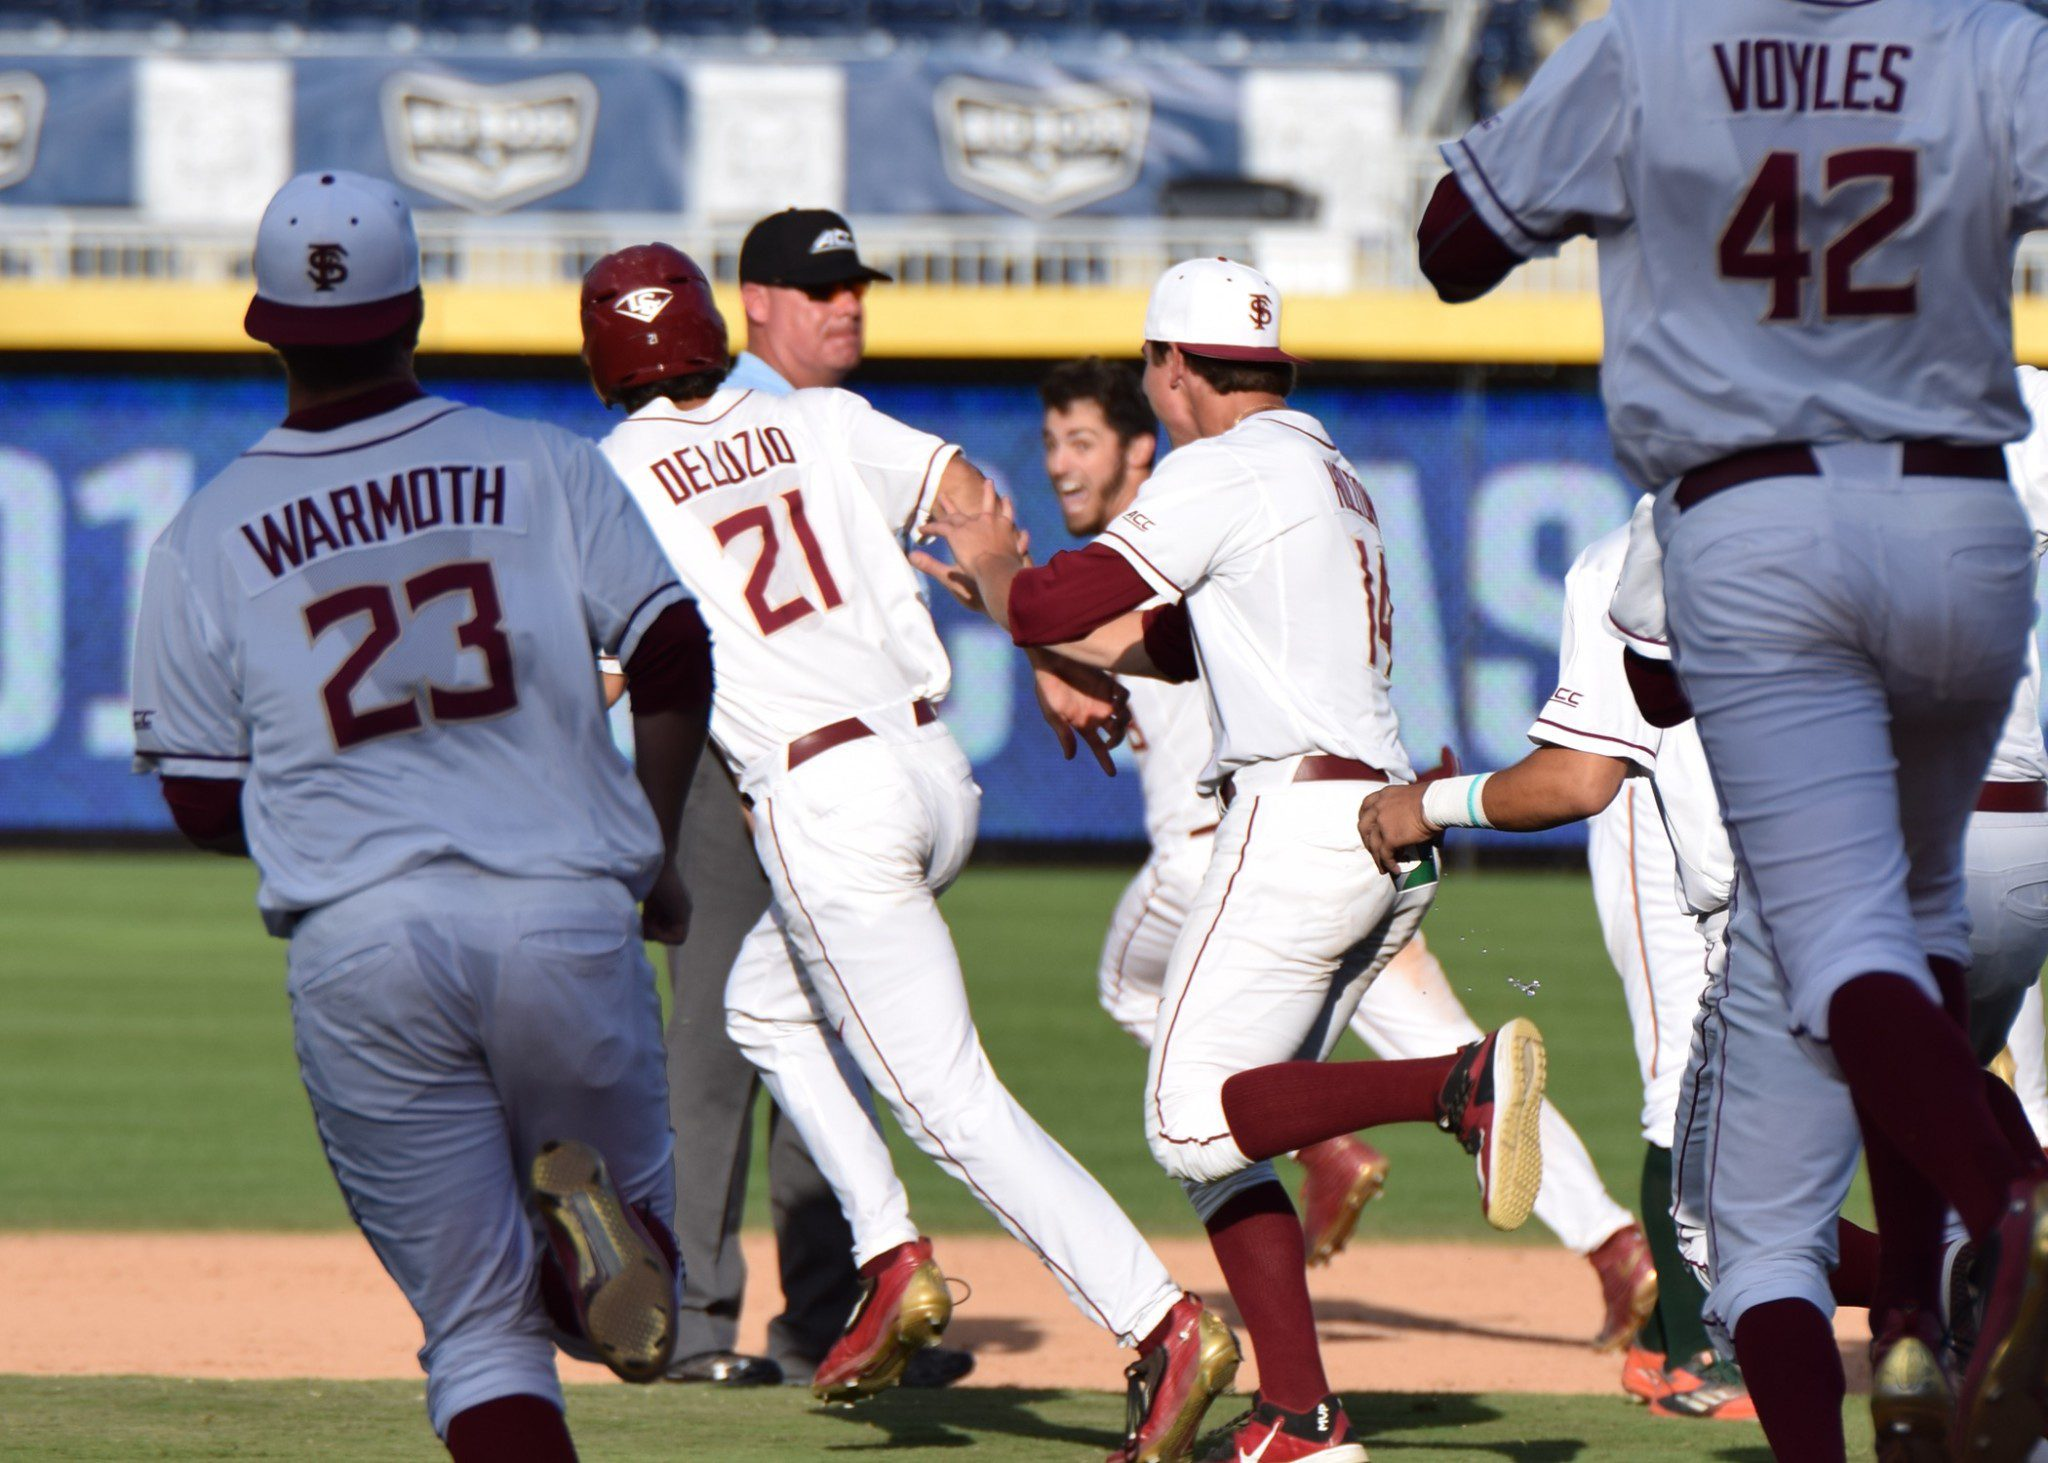 Florida State players try to mob Dylan Busby after his walk-off hit (Aaron Fitt)